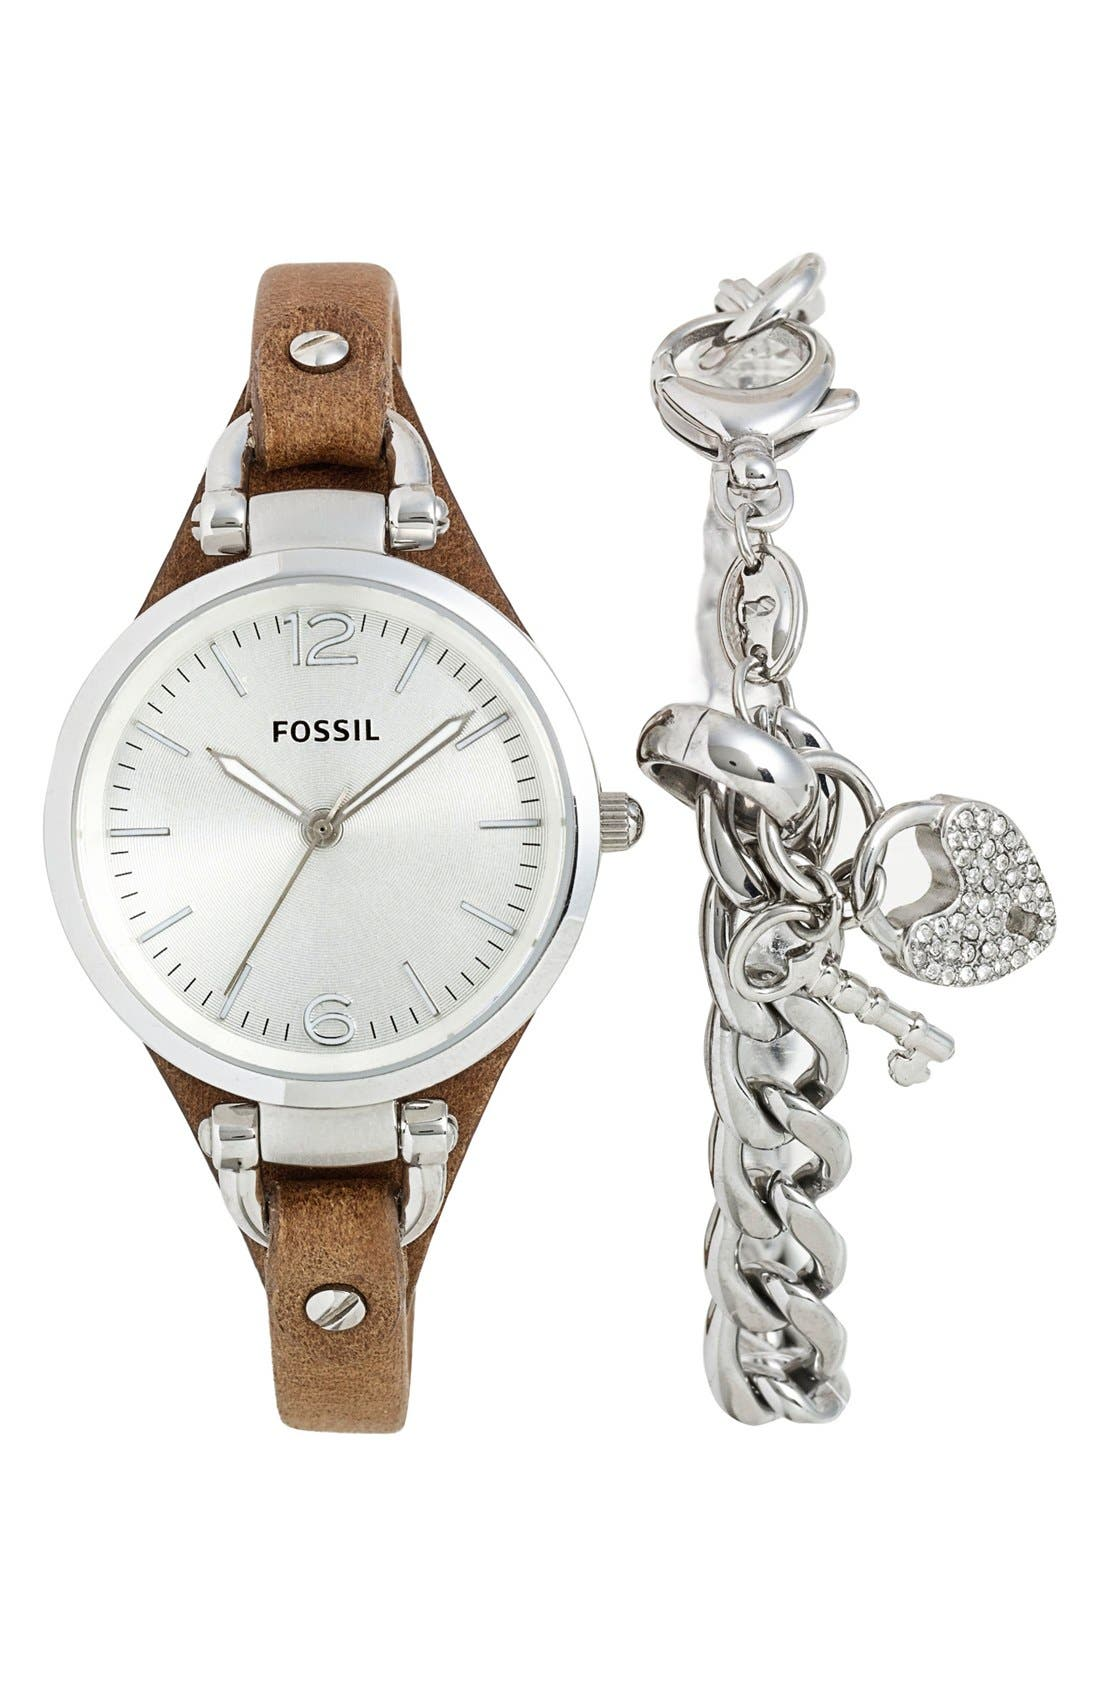 Main Image - Fossil 'Georgia' Leather Strap Watch & Charm Bracelet Set, 32mm ($123 Value)